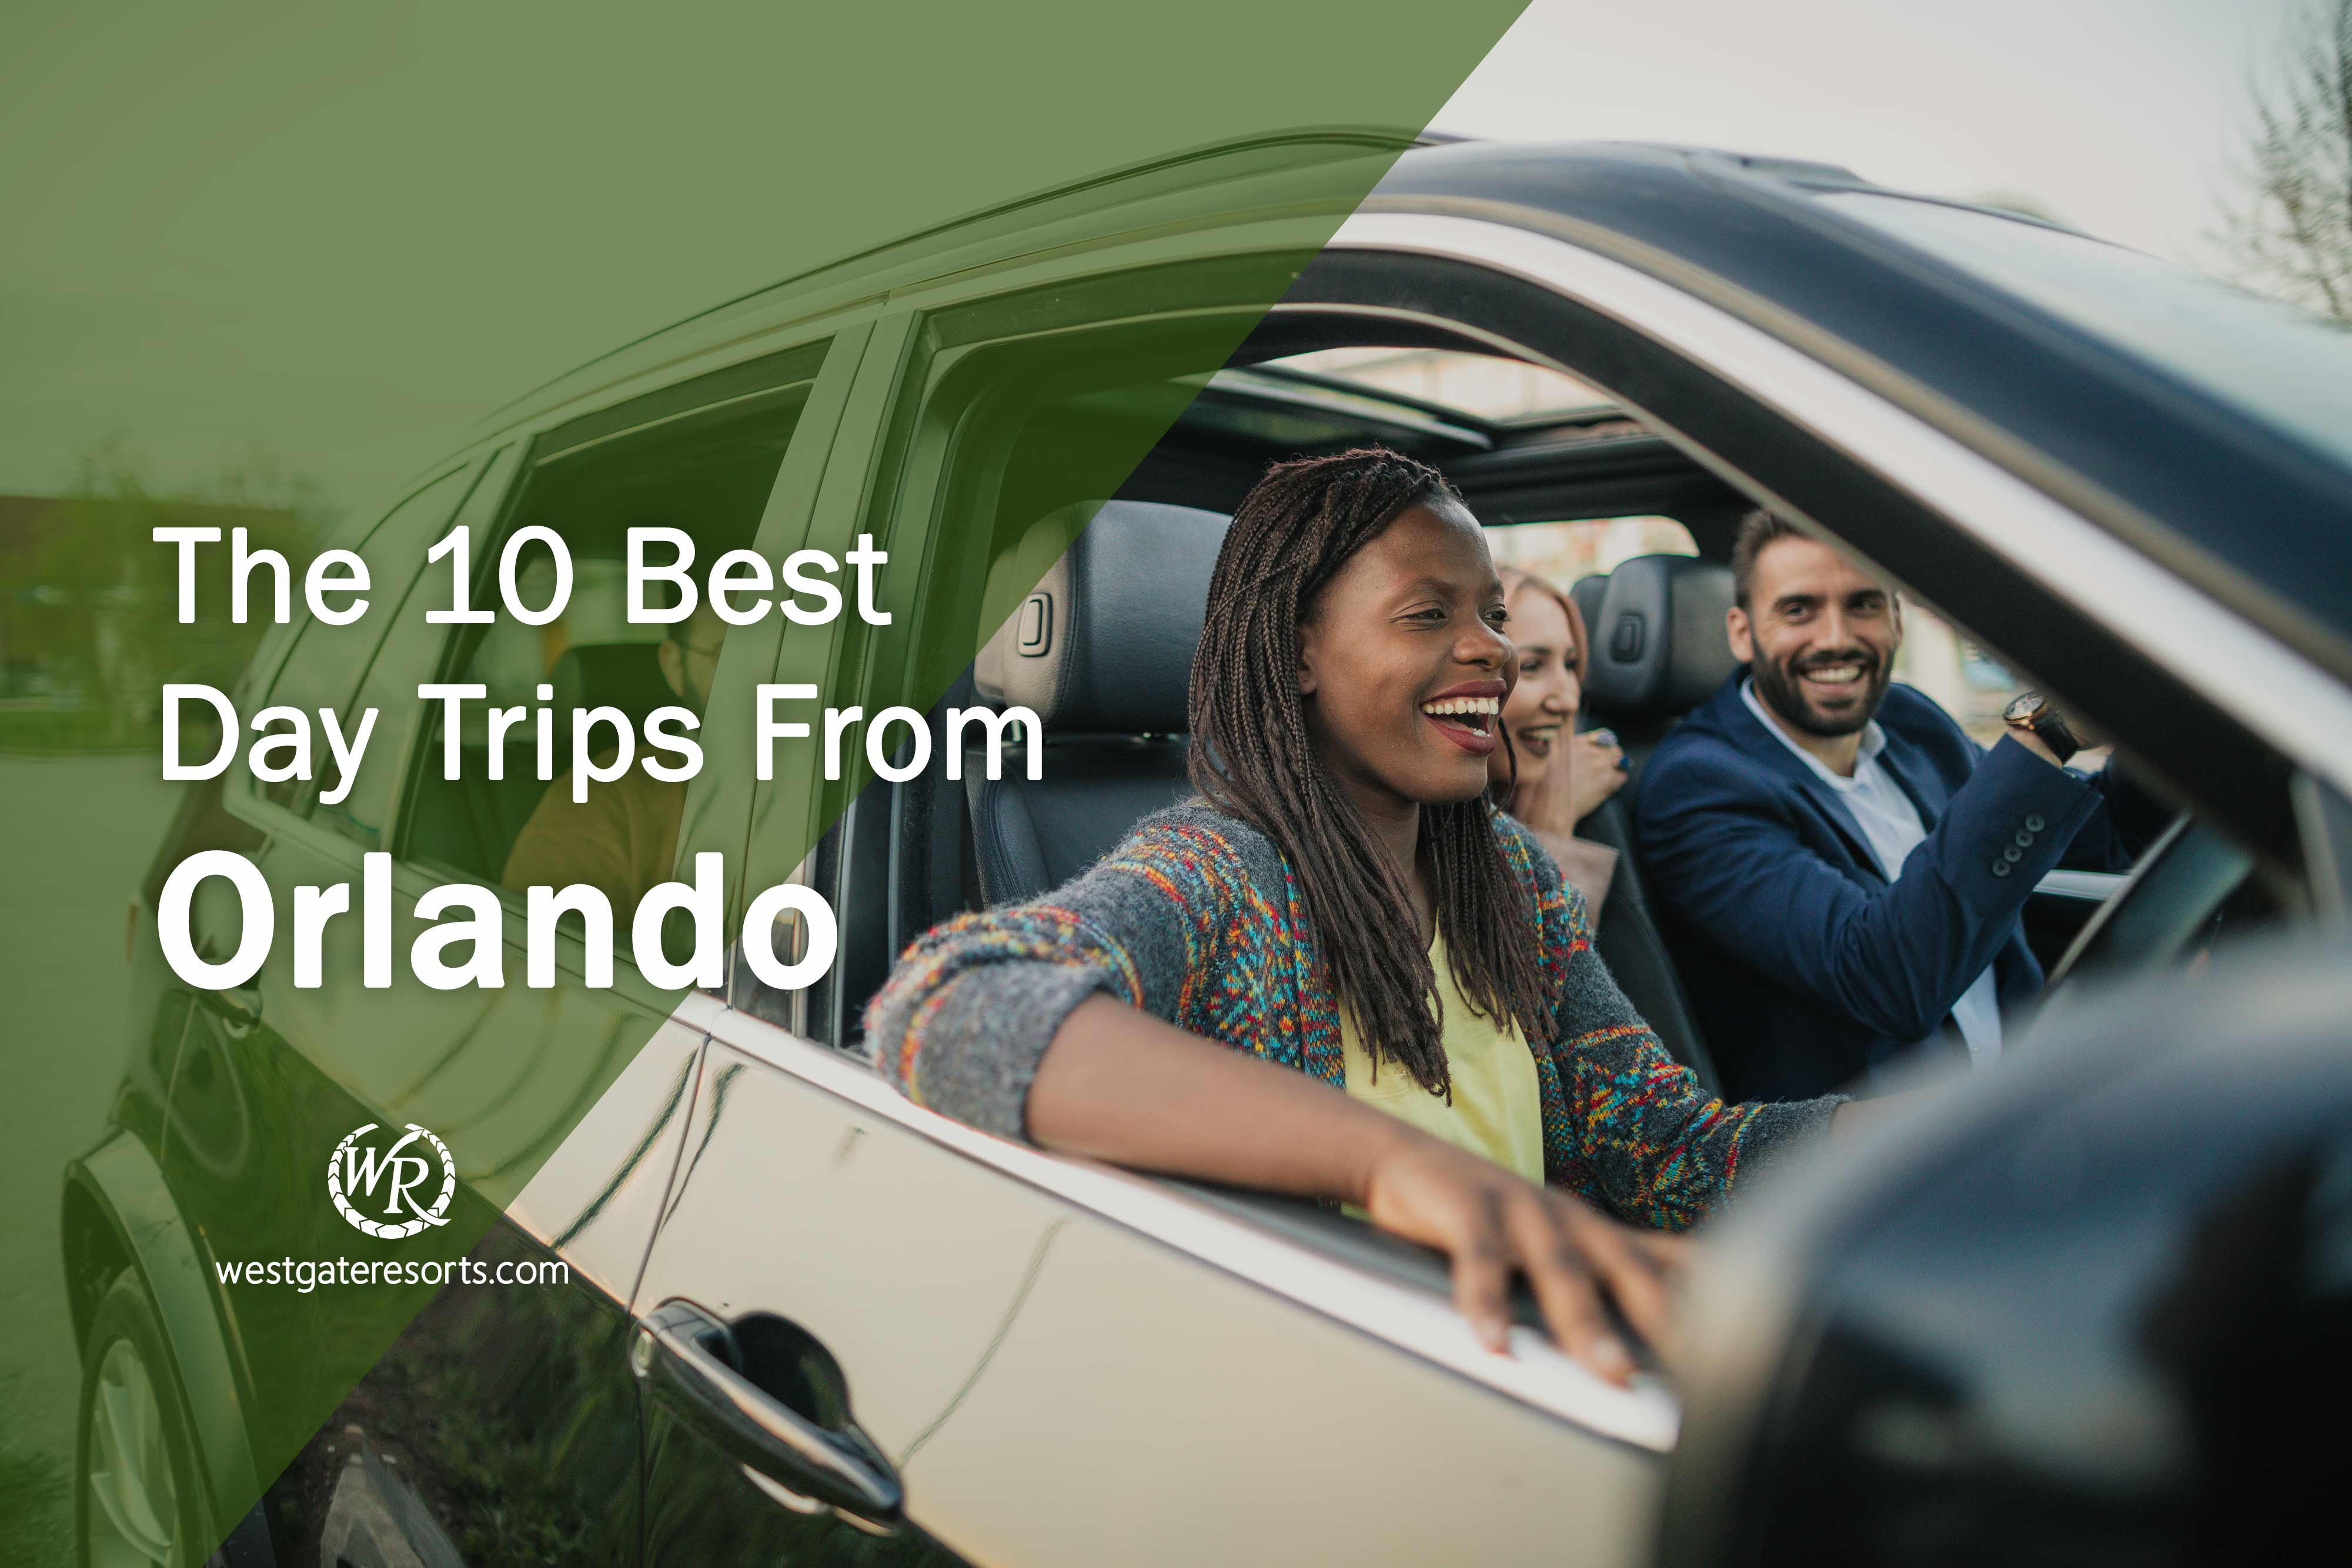 The 10 Best Day Trips From Orlando